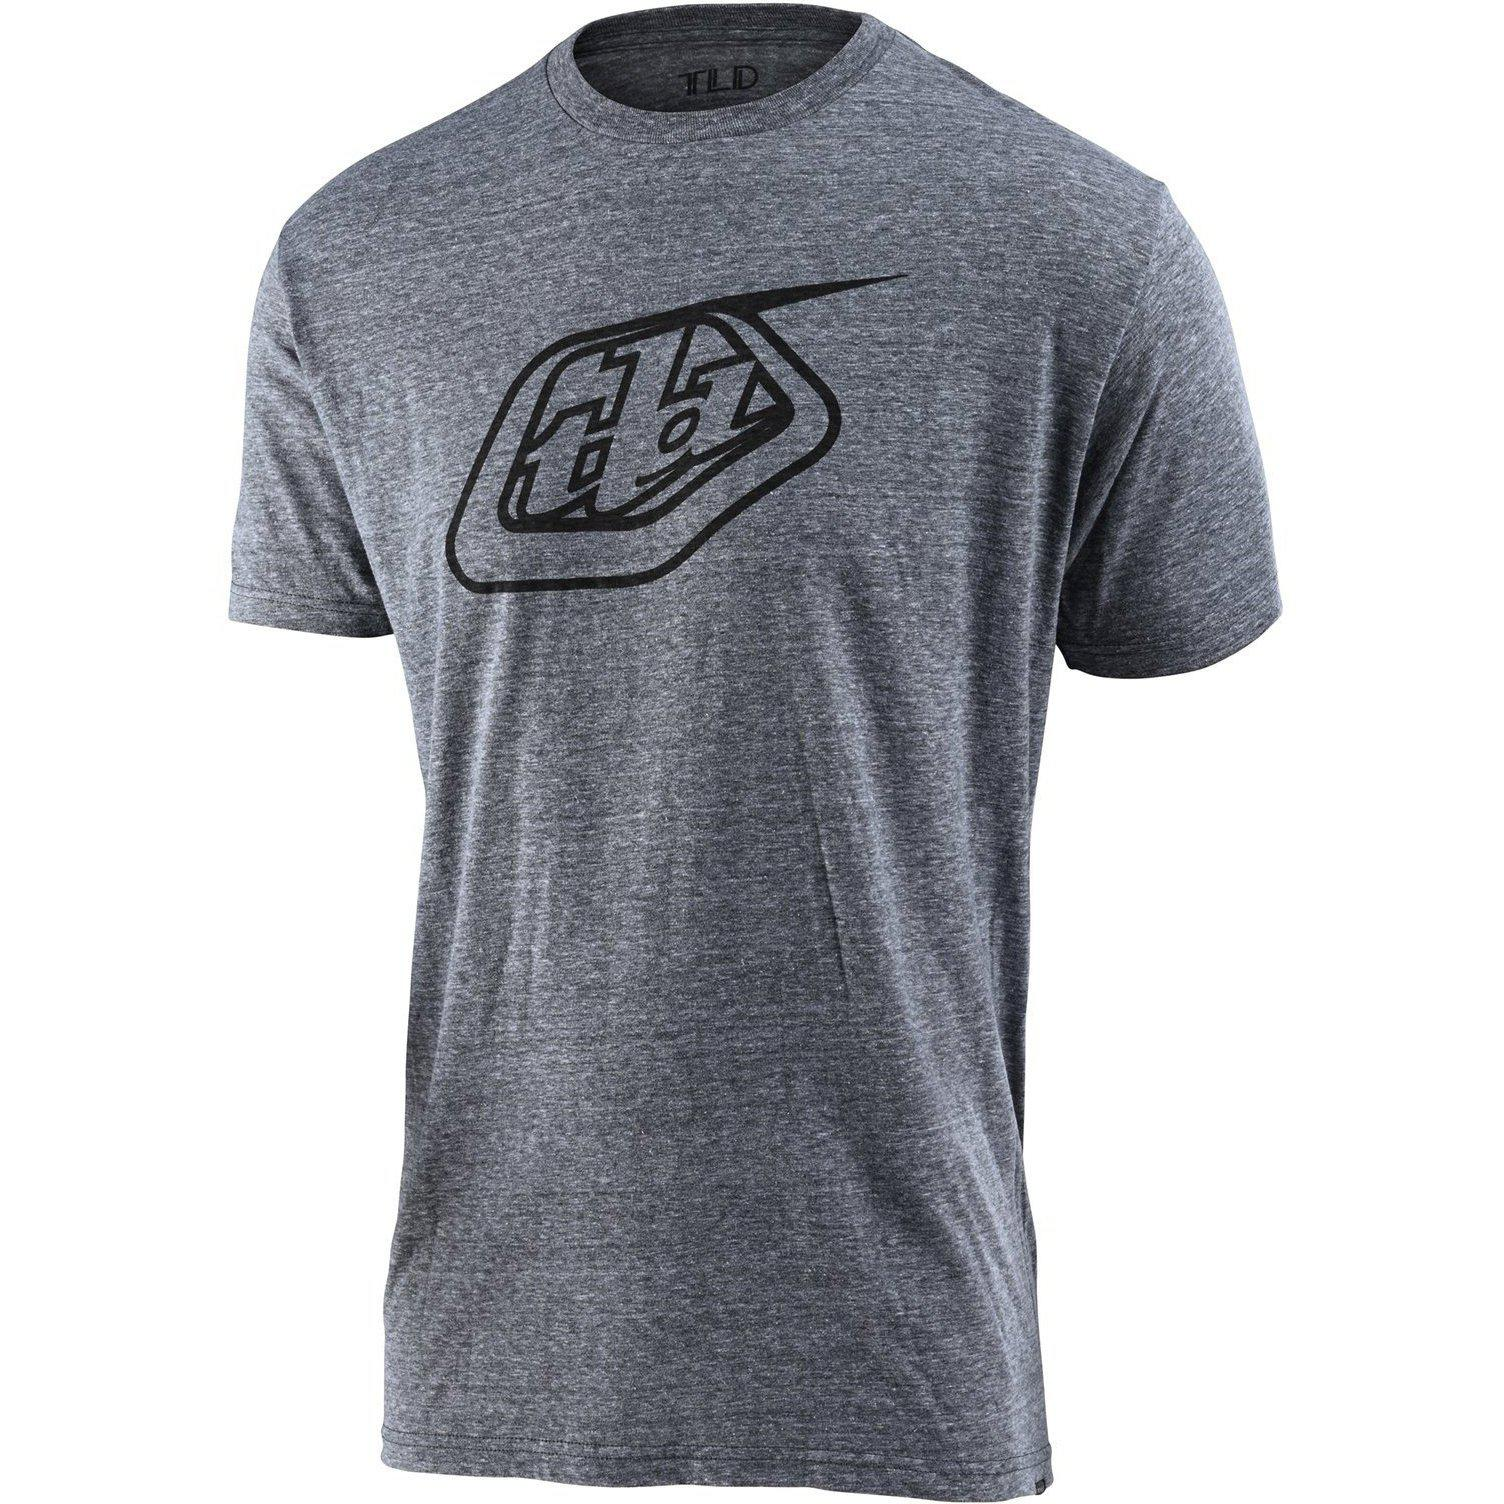 Troy Lee Designs-Troy Lee Designs Logo T-shirt-Vintage Gray Snow-S-TLD701817012-saddleback-elite-performance-cycling